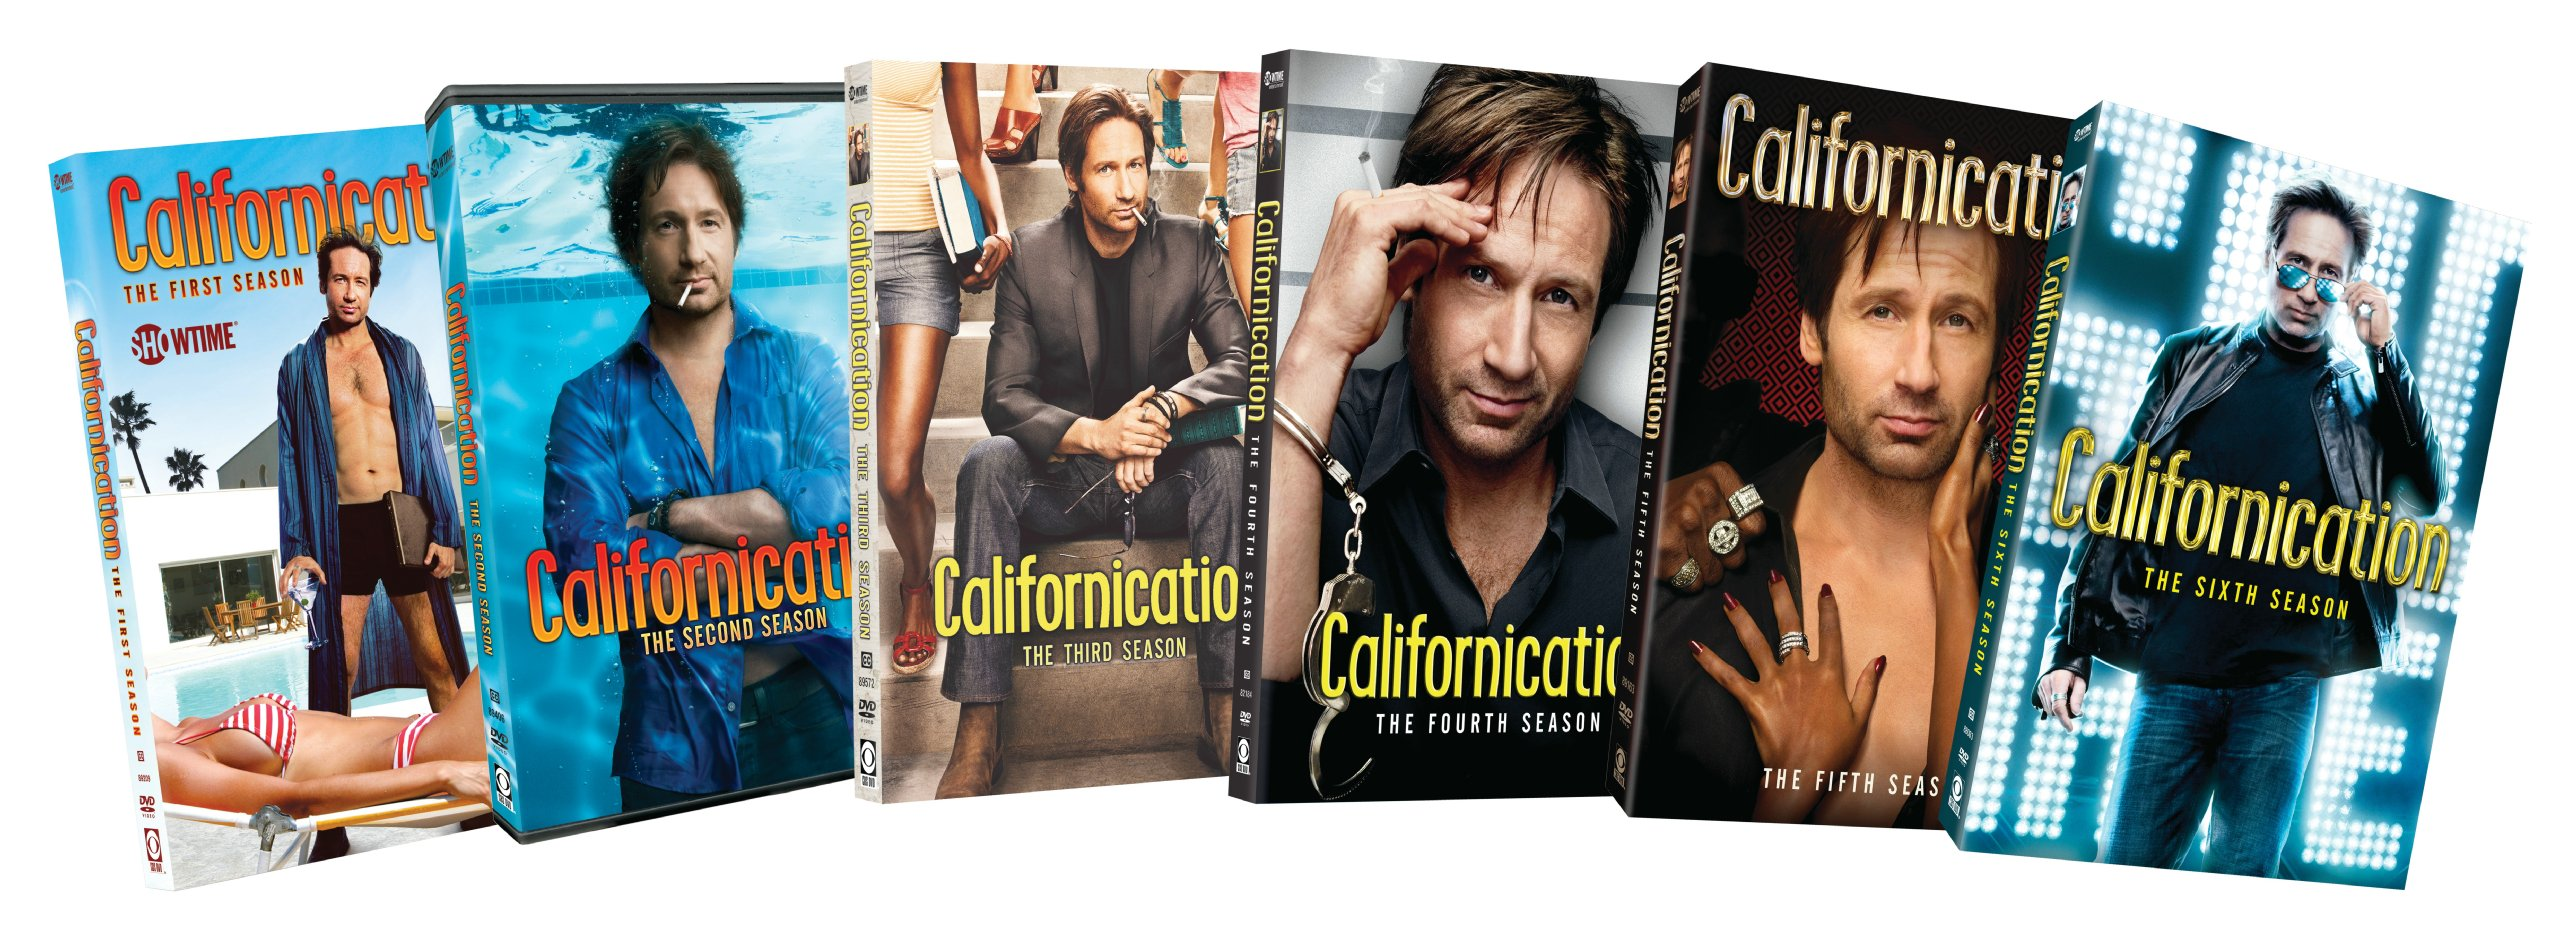 Californication: Six Season Pack by Paramount